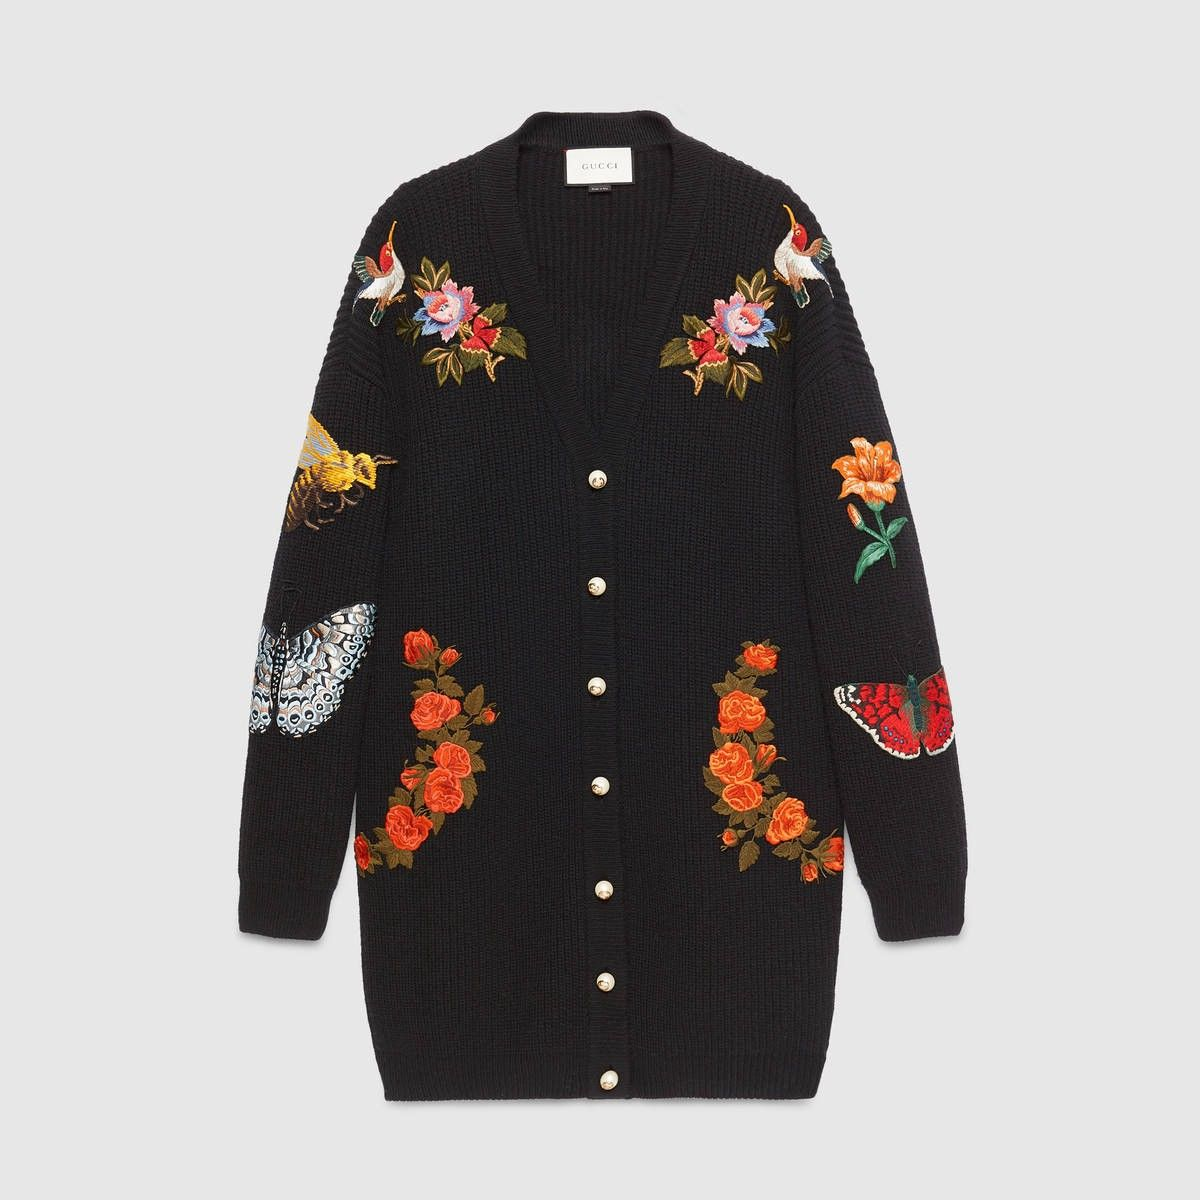 GUCCI Oversize embroidered wool cardigan - black wool. #gucci #cloth #